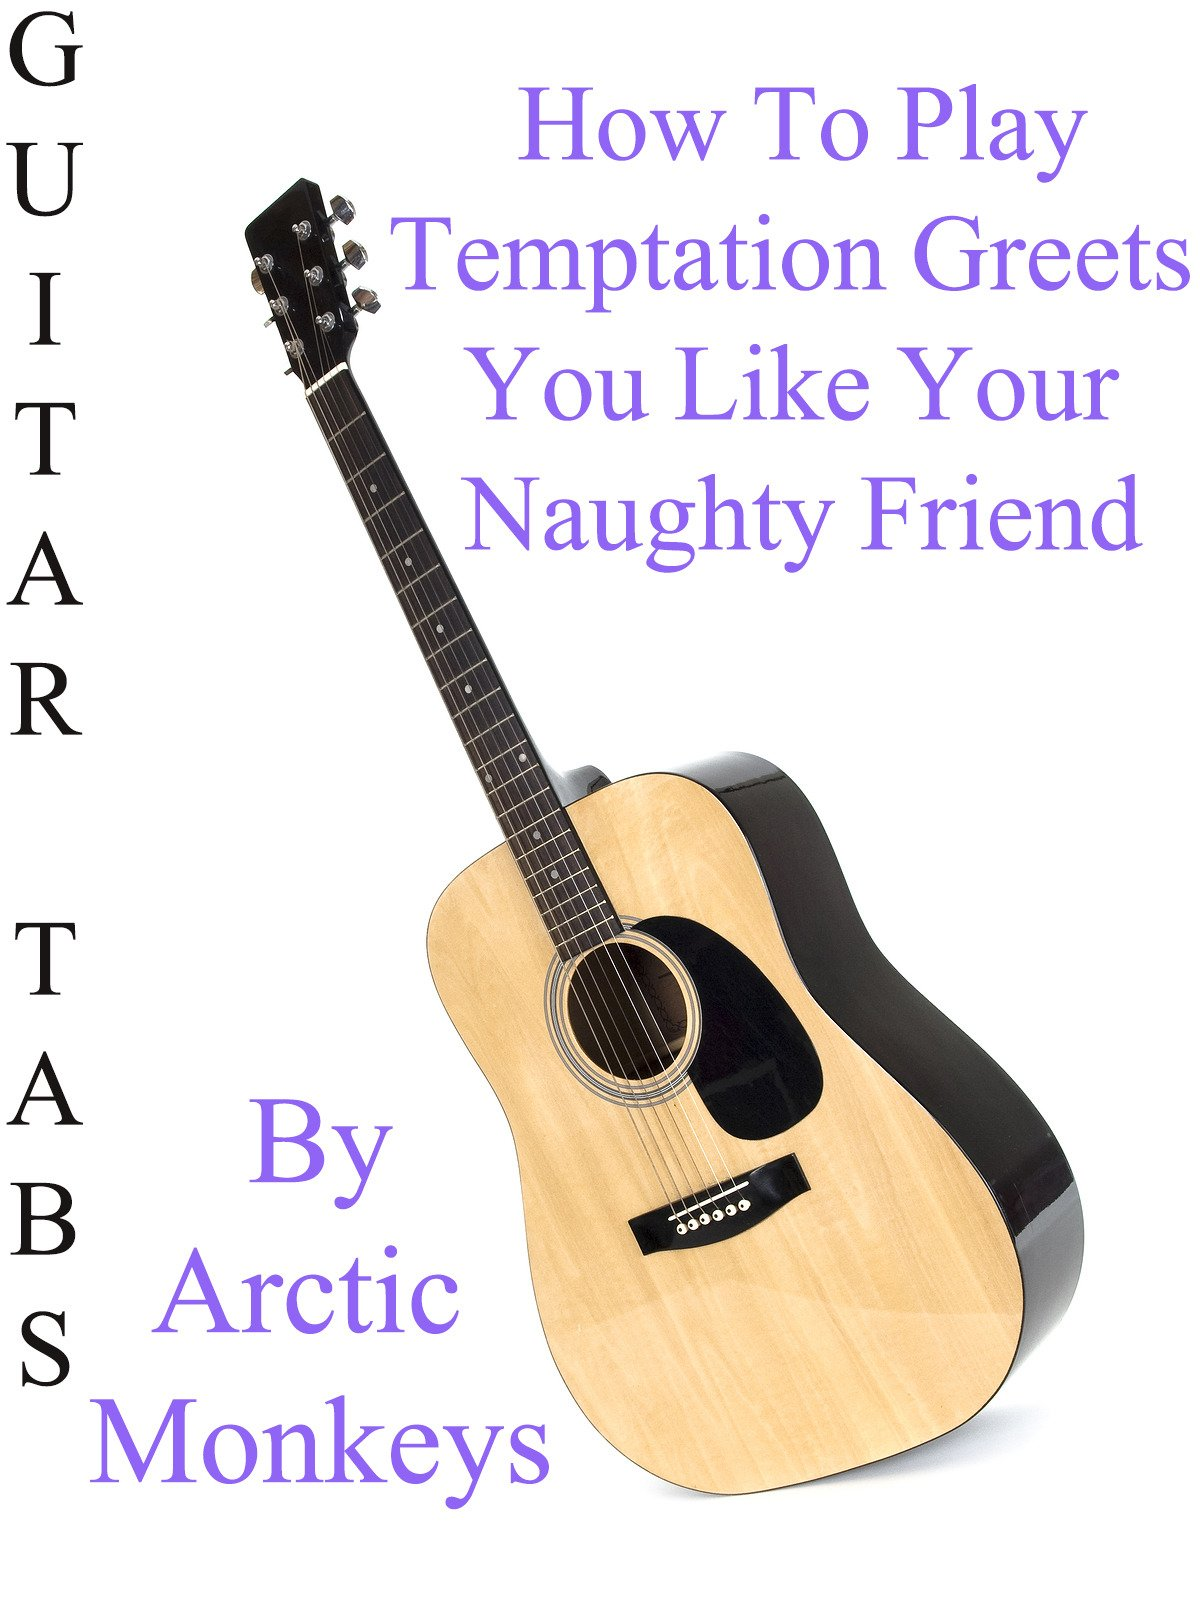 Amazon how to play temptation greets you like your naughty amazon how to play temptation greets you like your naughty friend by arctic monkeys guitar tabs guitartutorials amazon digital services llc m4hsunfo Gallery